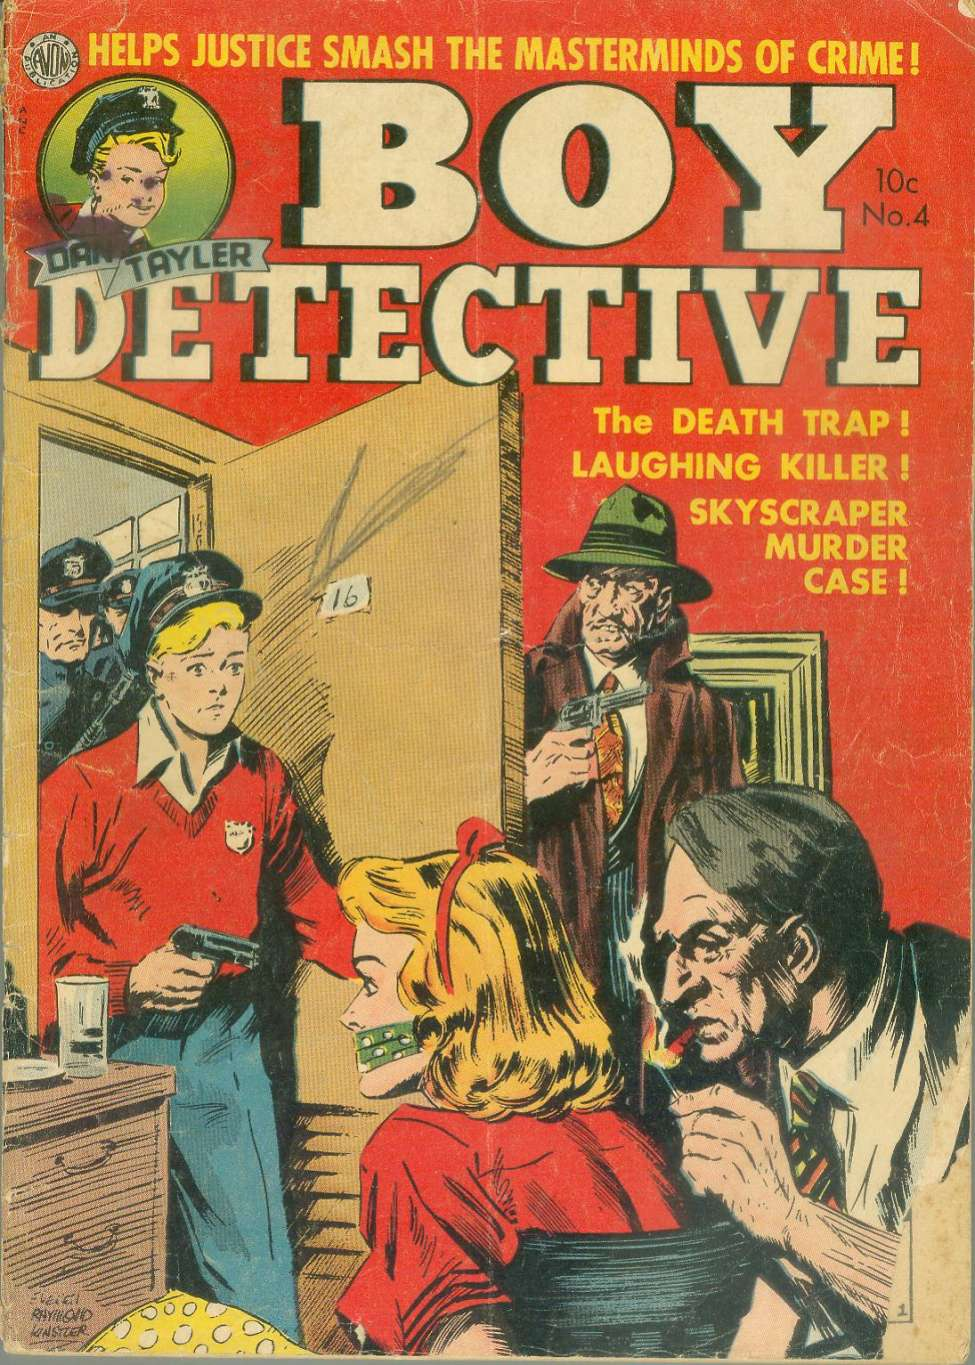 Boy Detective #4, by Avon